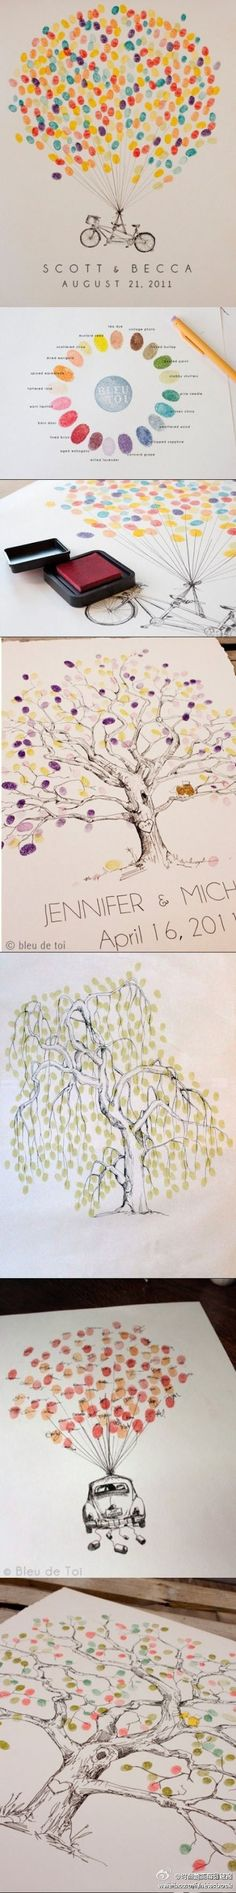 "Morgan- to do an oak tree with different color green thumb prints and guests sign their name on the ""leaf""???"